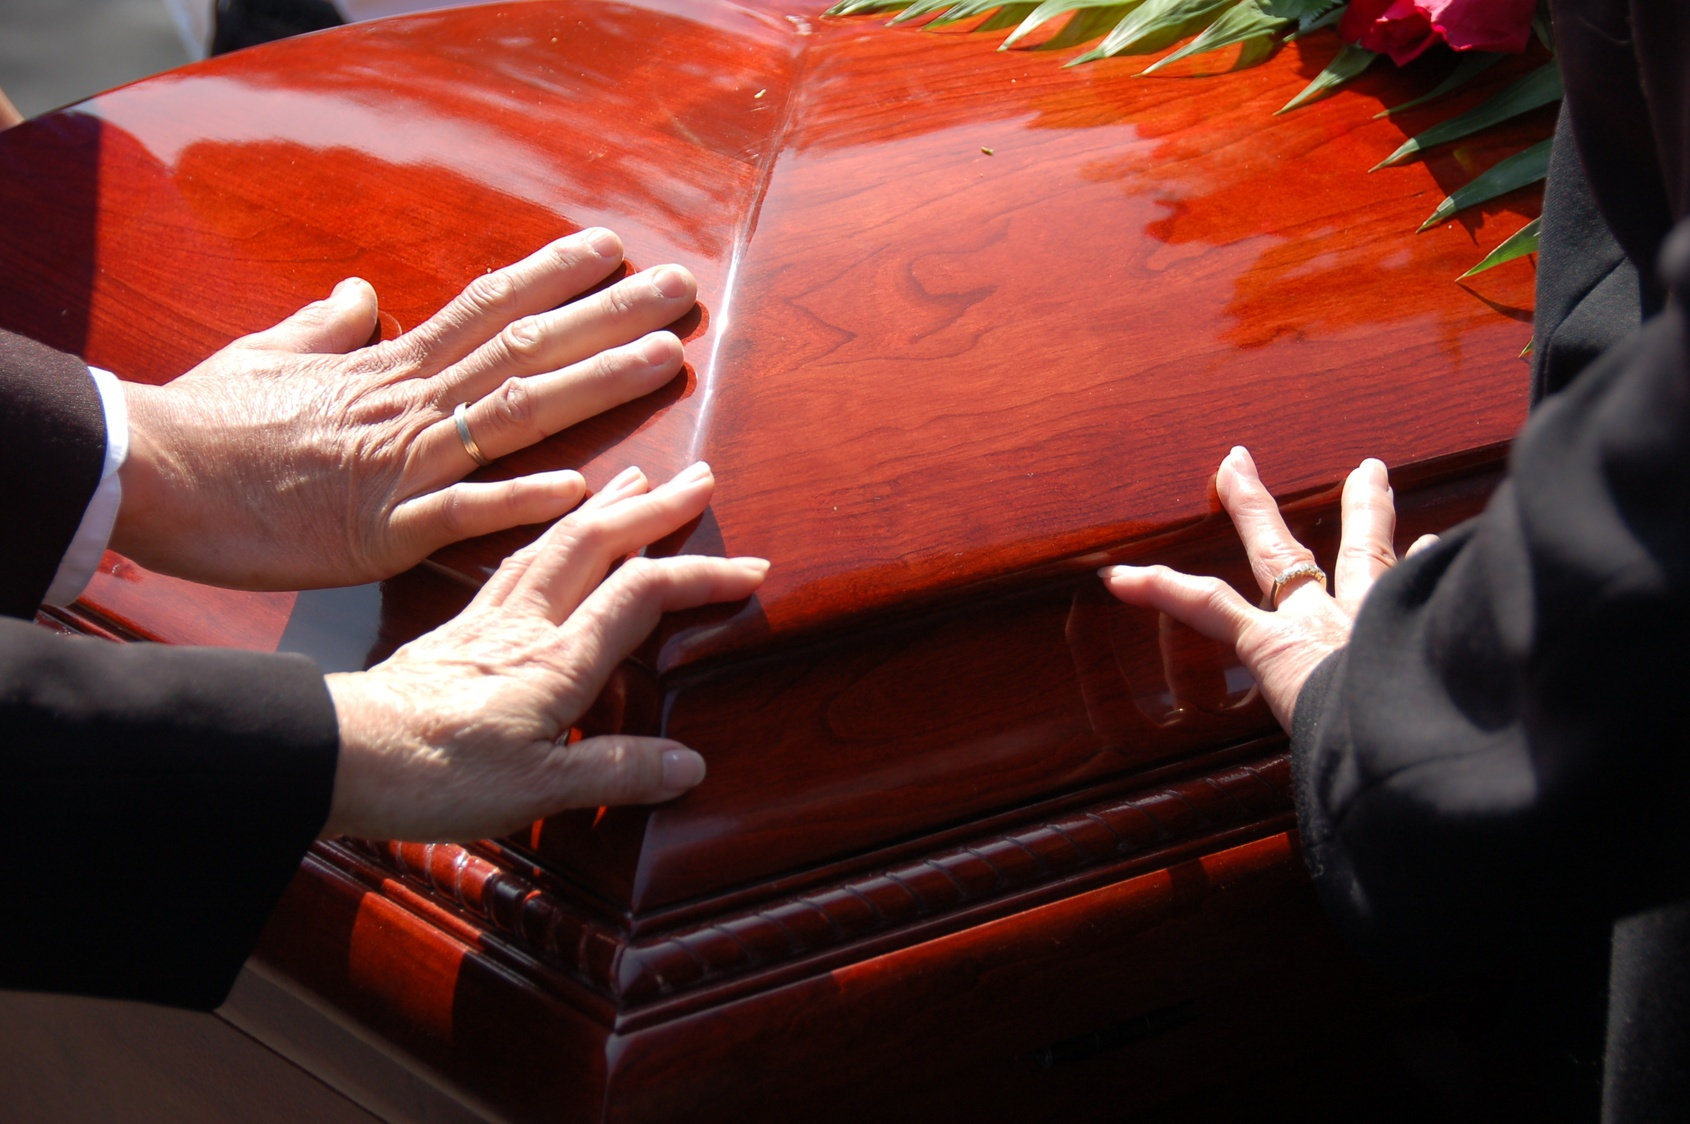 Wrongful death mourning the loss of a loved one.jpg